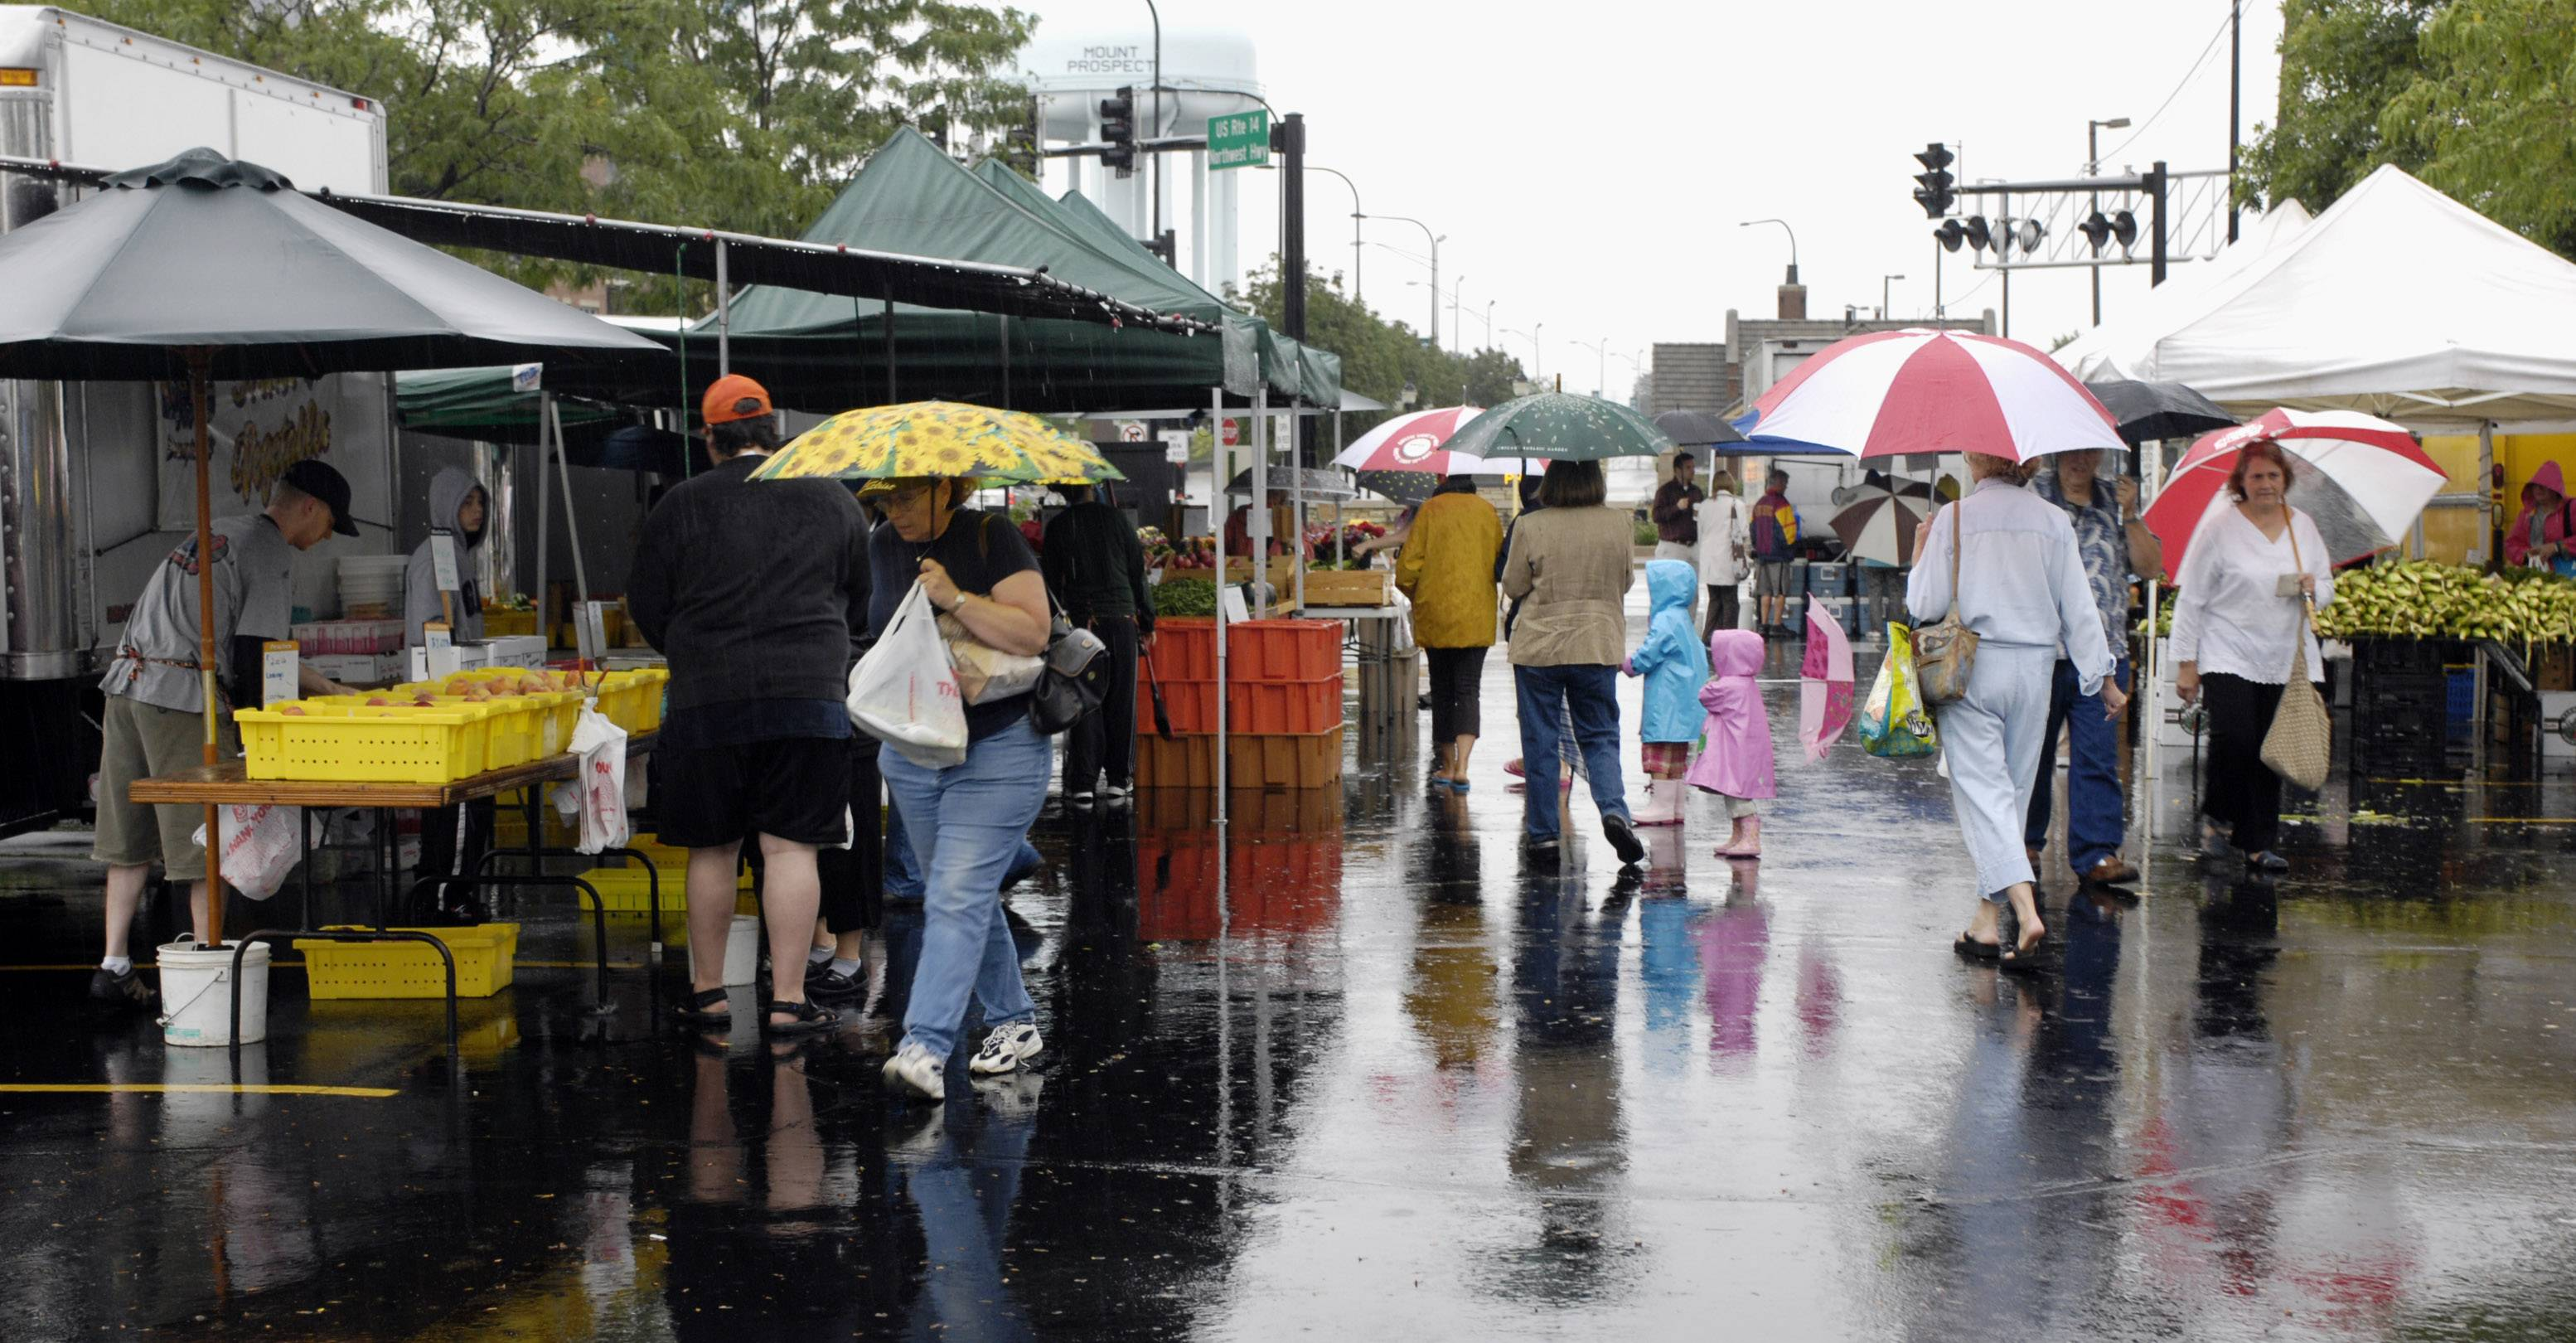 The Mount Prospect French Market goes on sunshine or rain, as demonstrated by heavy rains during the 2008 event.